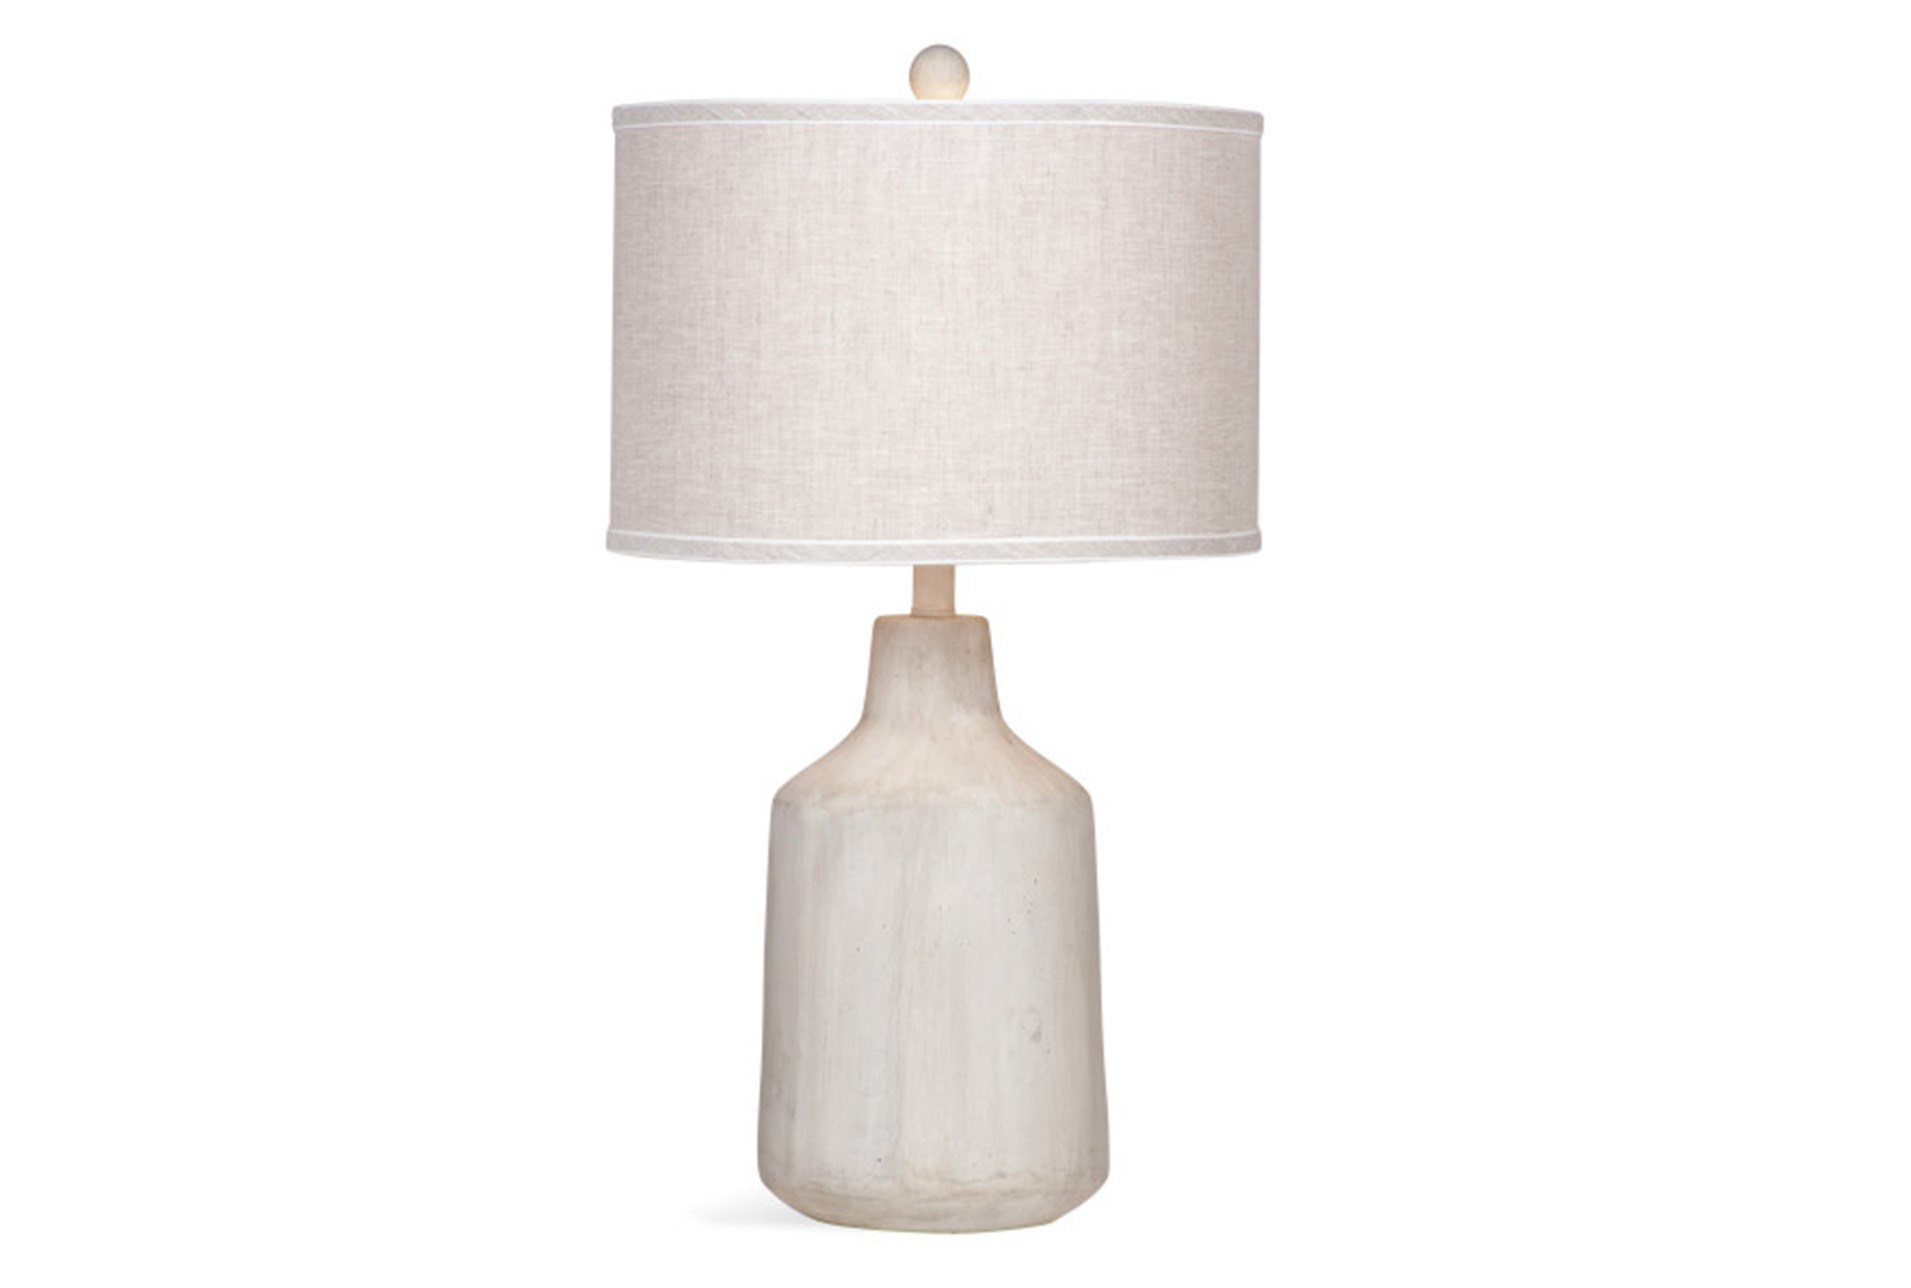 Table Lamp Concrete Drum With Linen Shade Qty 1 Has Been Successfully Added To Your Cart